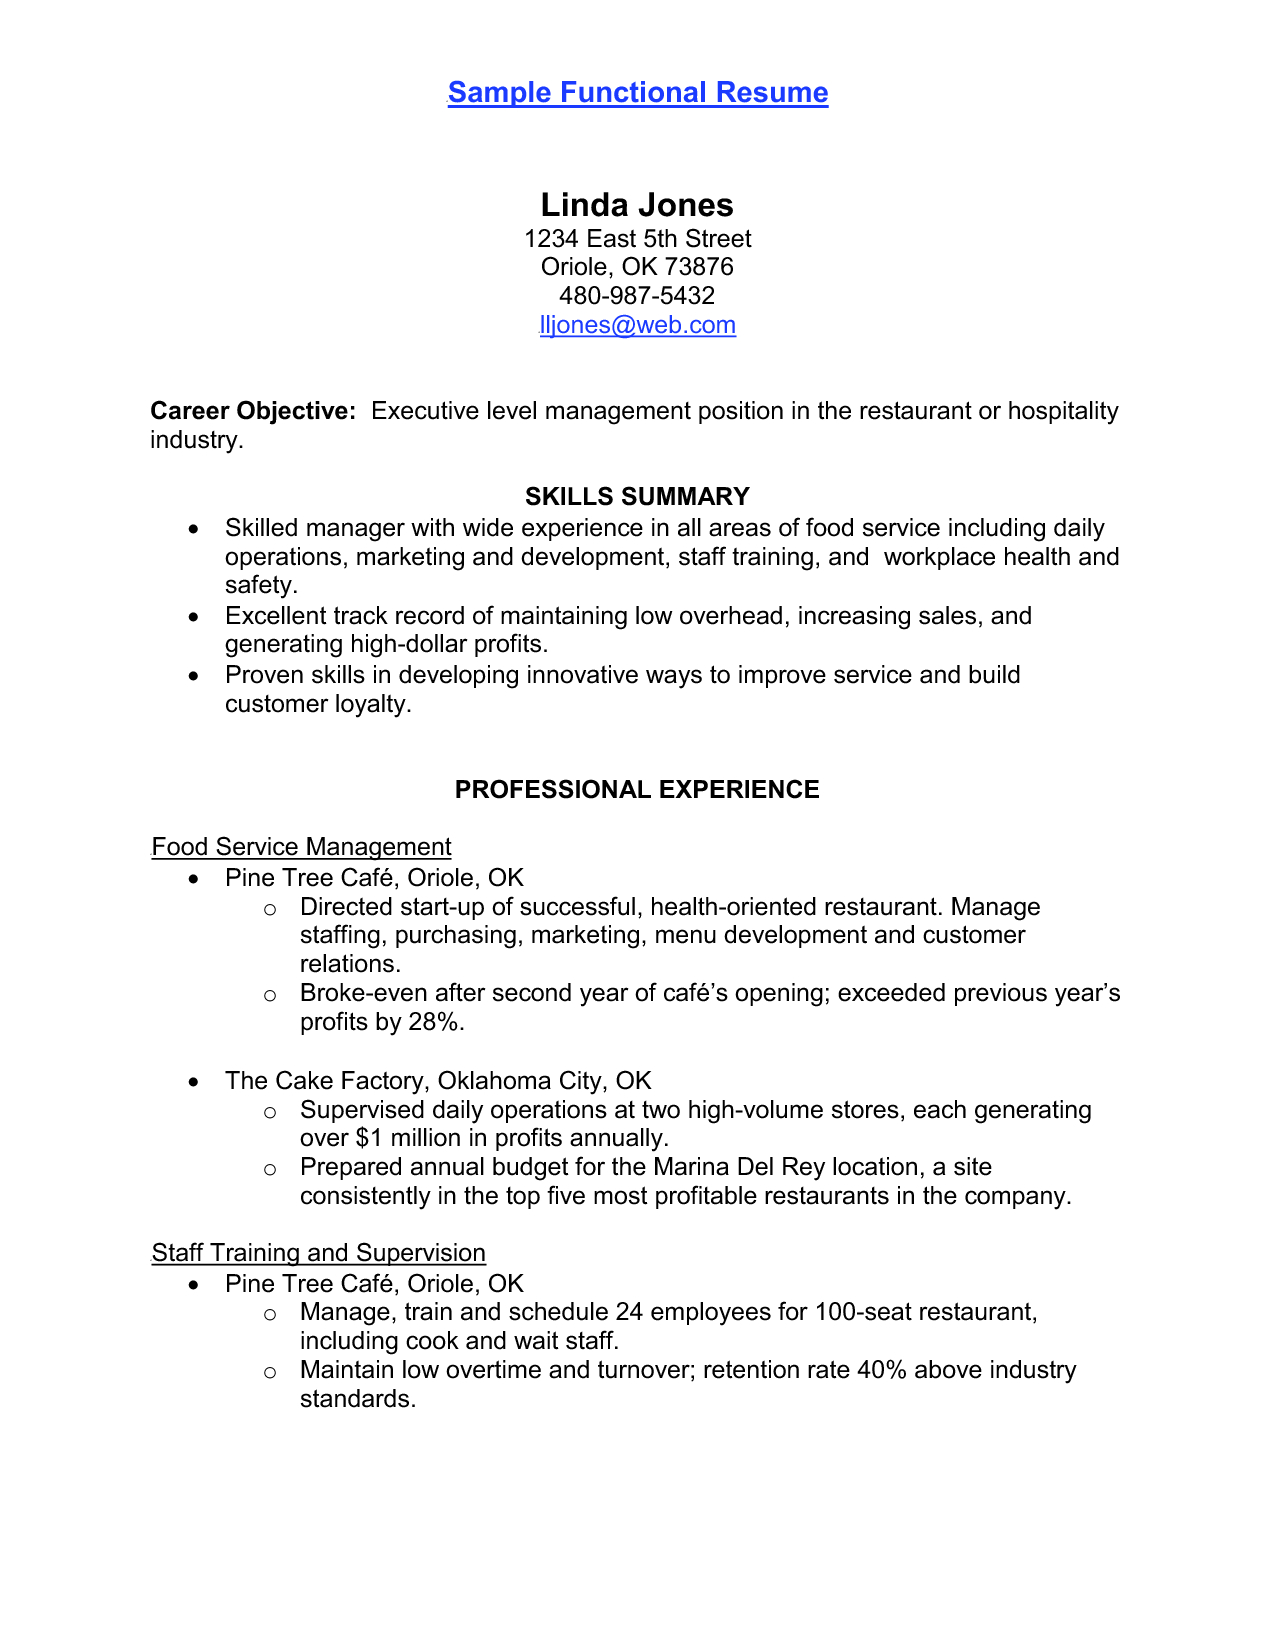 Resume Objective for Fast Food - Resume Examples Tamu Resume Examples Pinterest